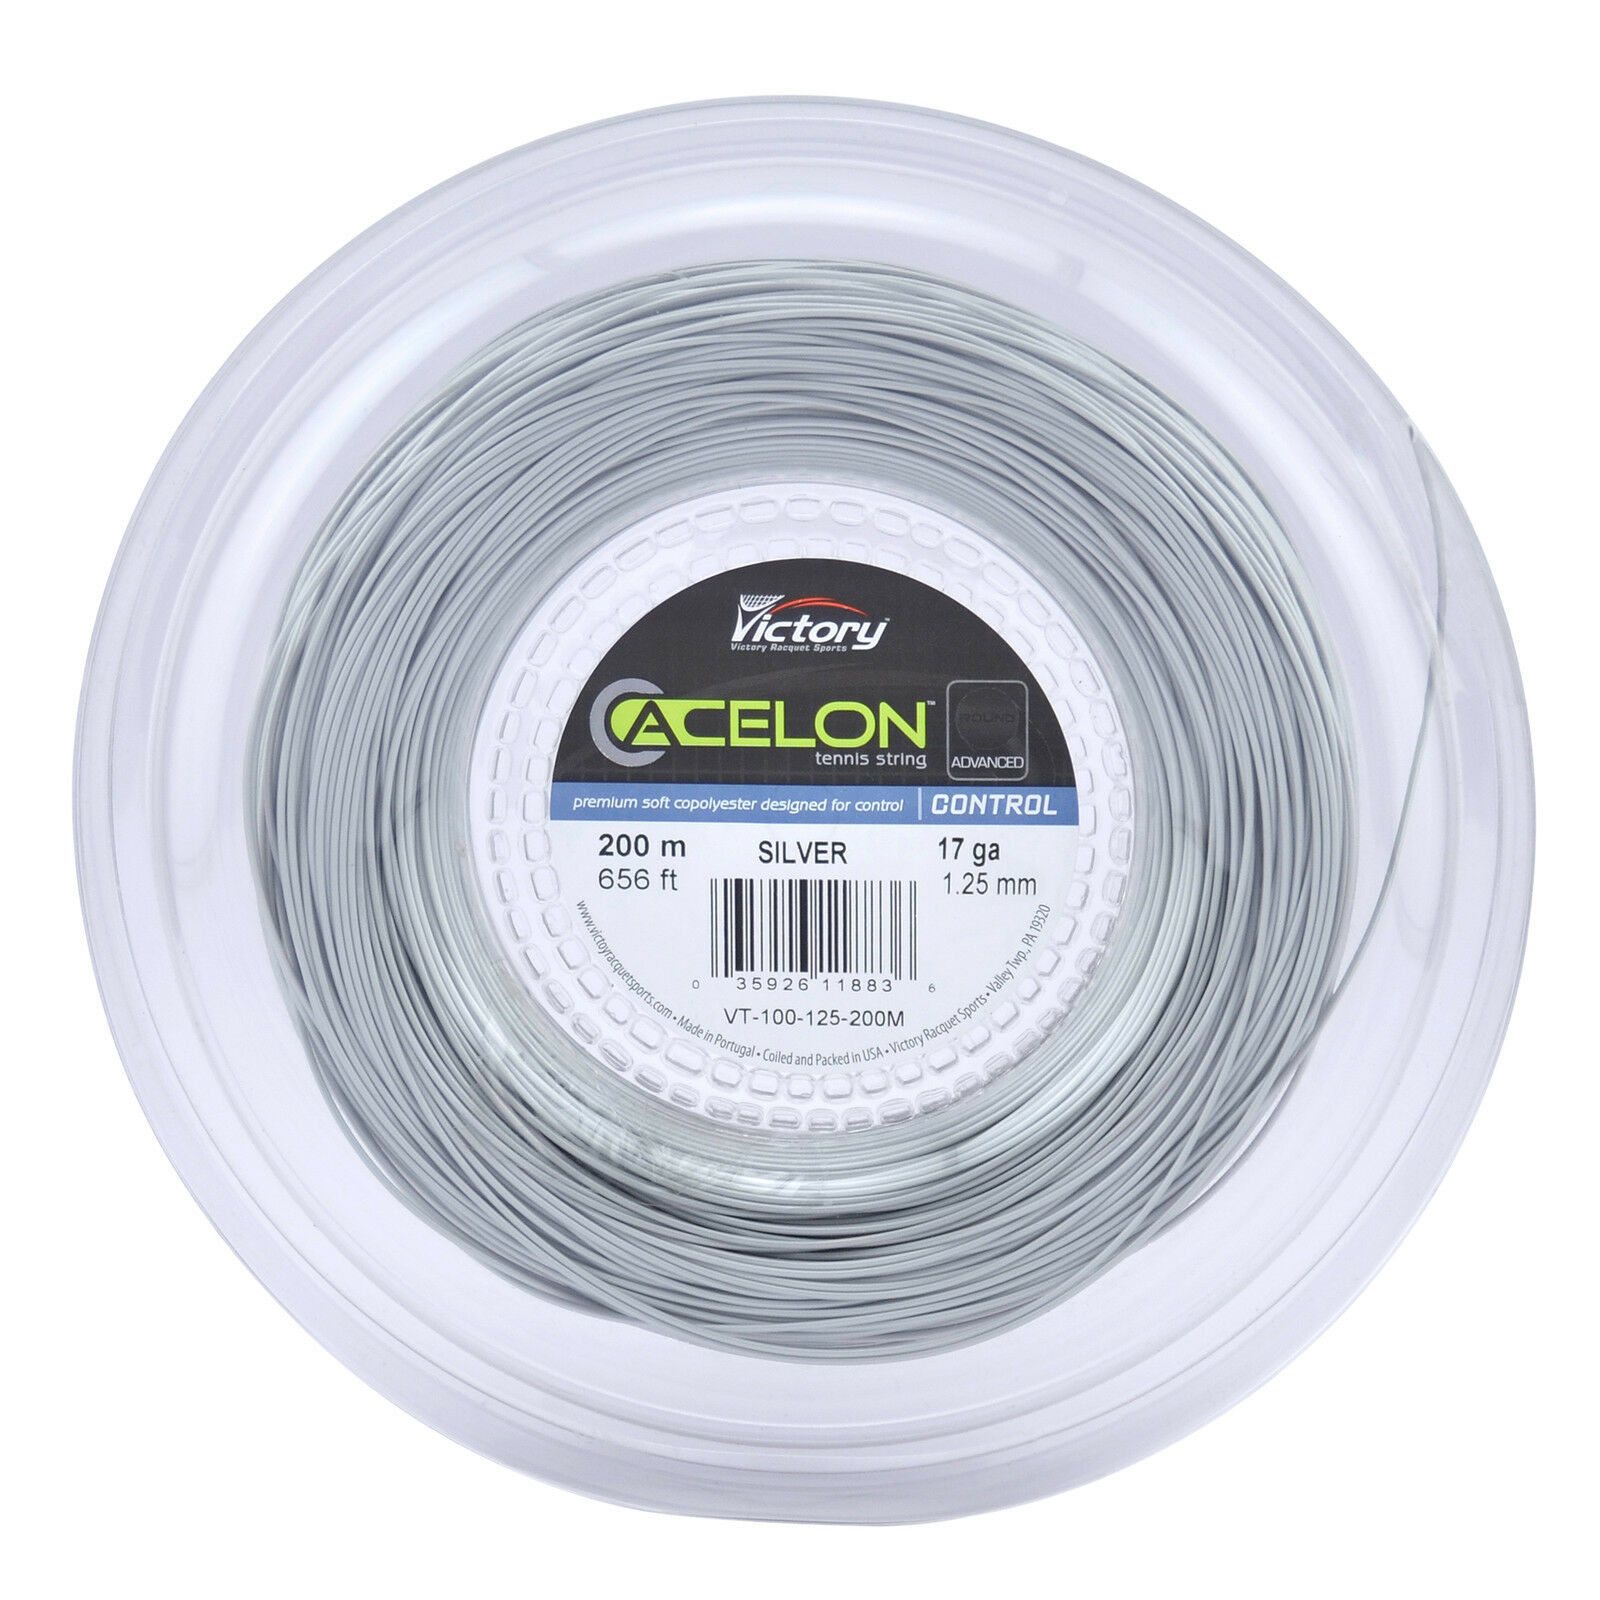 ACELON ADVANCED COPOLY 17g TENNIS STRING REEL - 200M 656FT - Reg